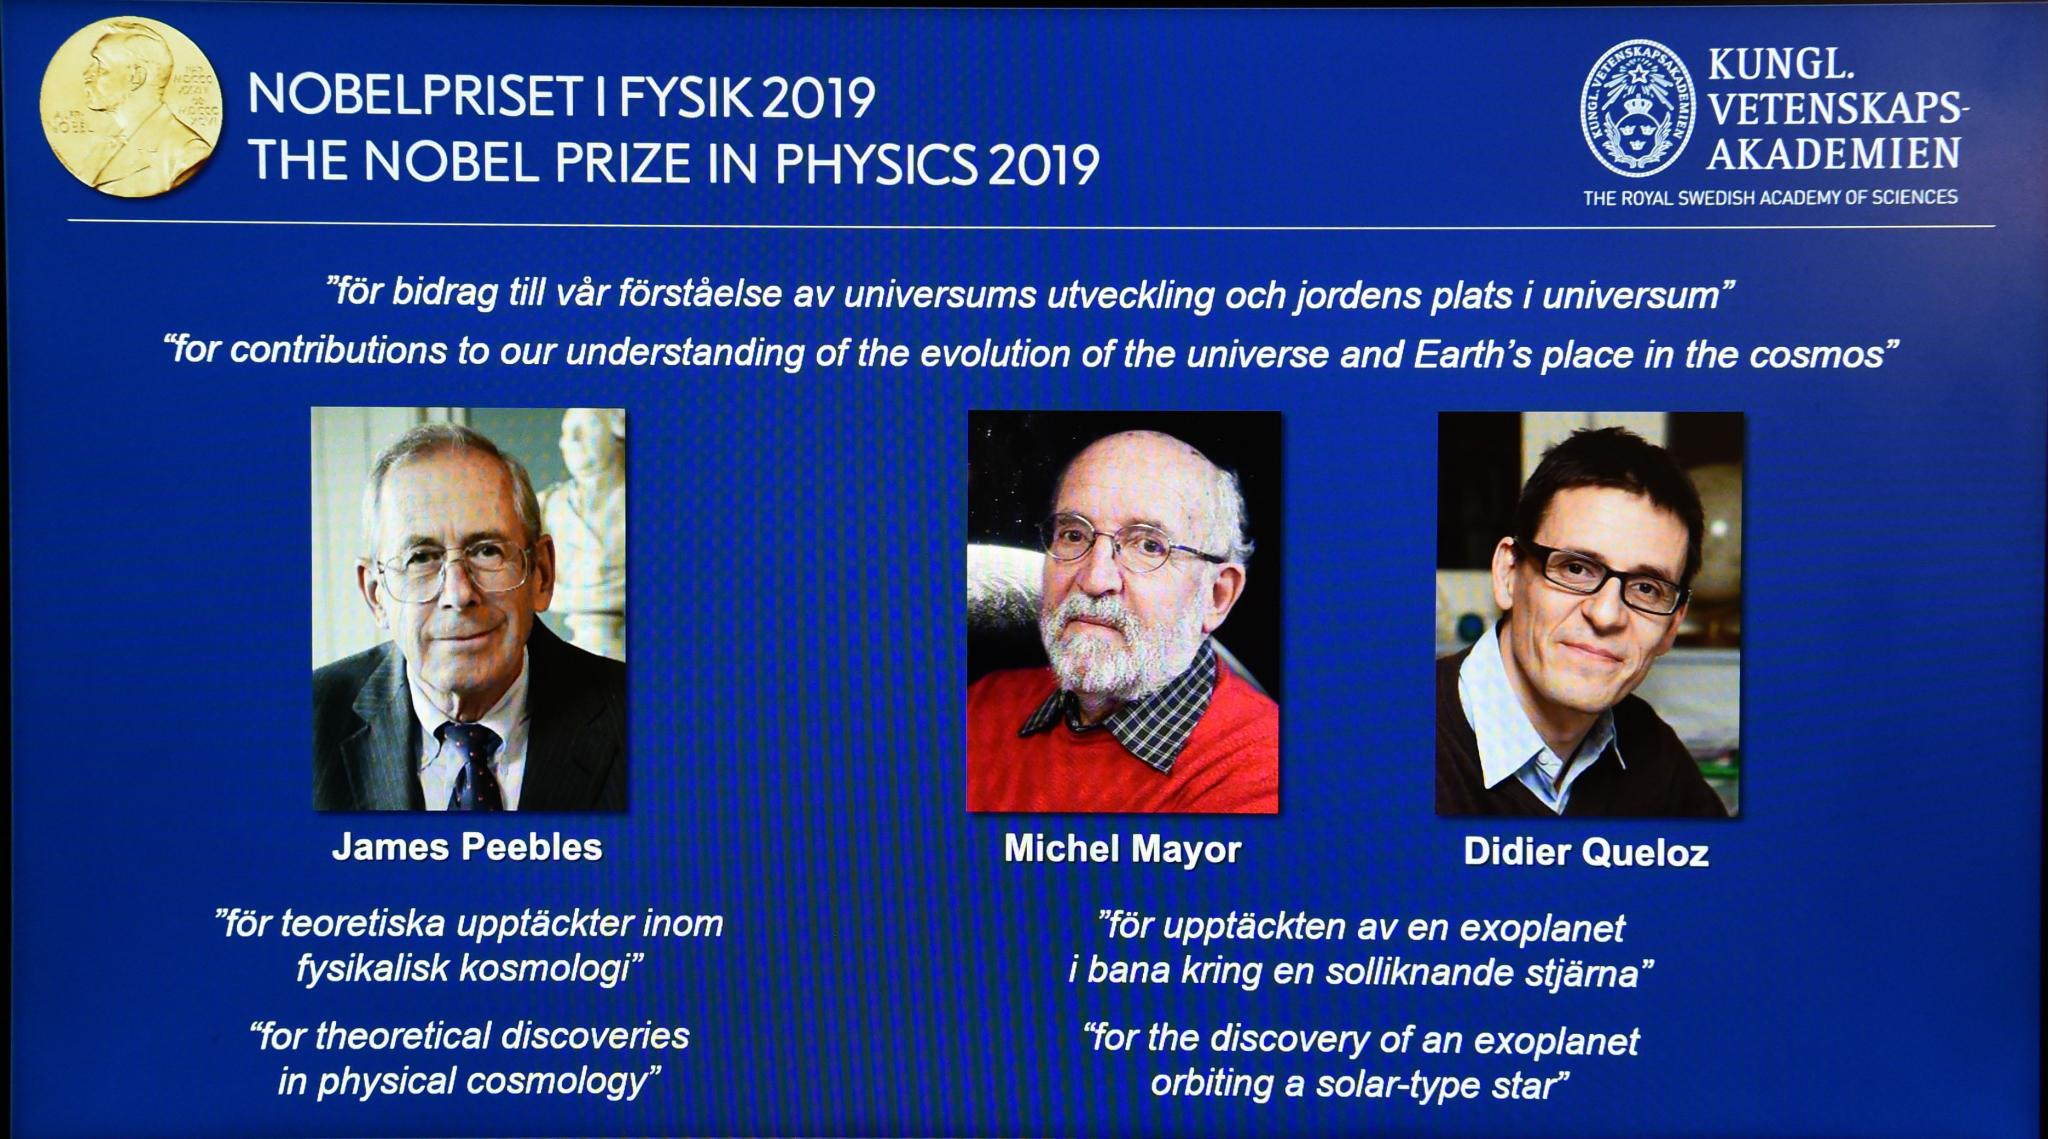 Nobel Prize Winners For Physics From 2010 to 2019: From James Peebles to Andre Geim, Check Names of Awardees of Last 10 Years